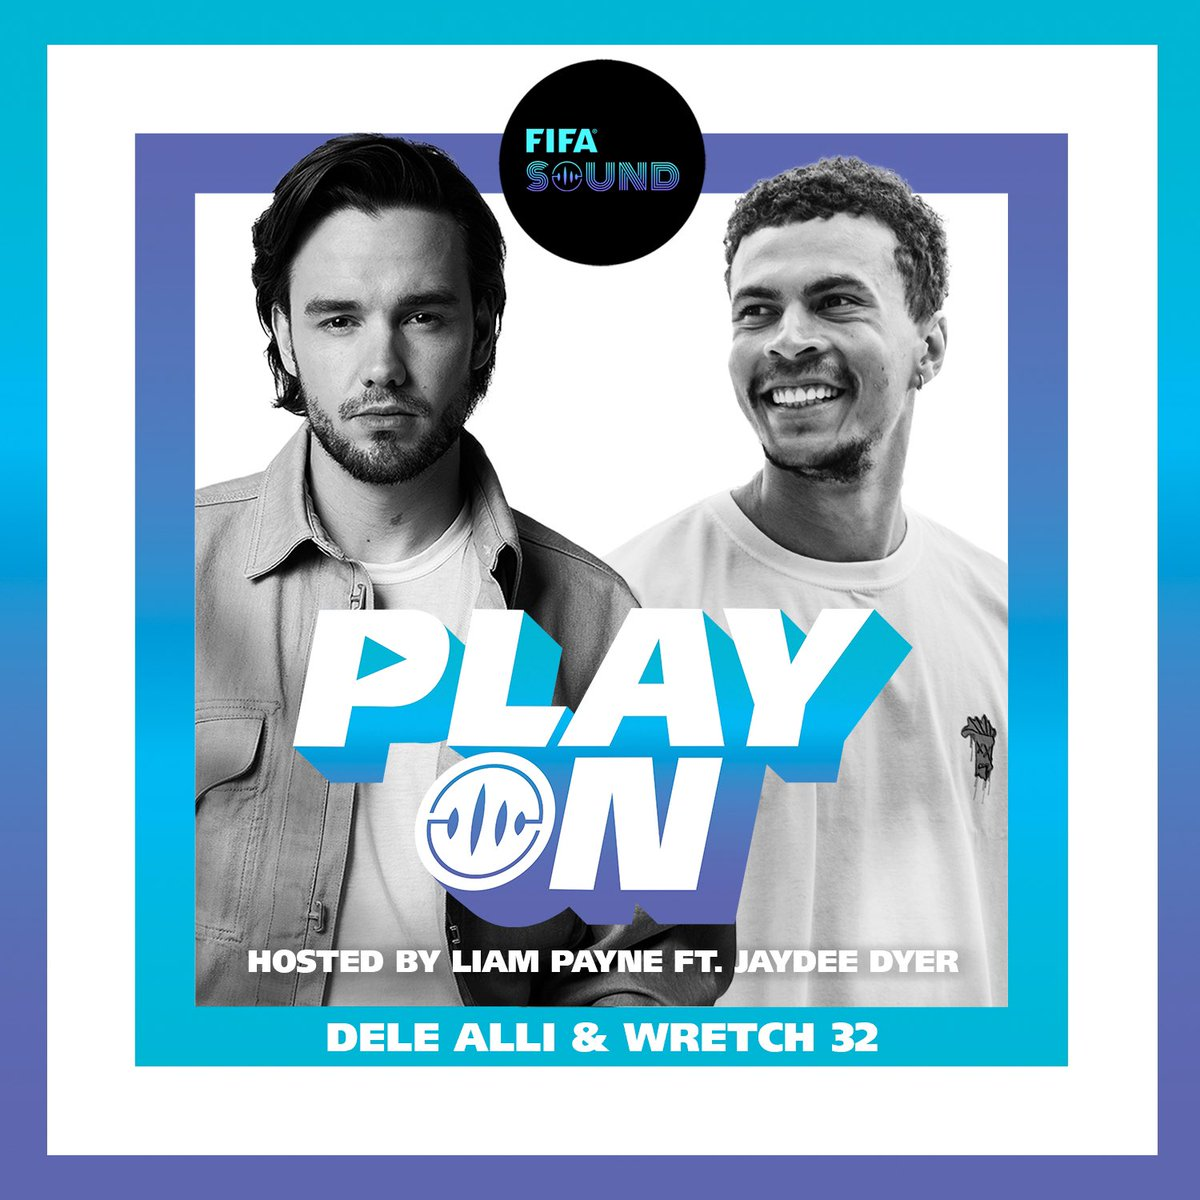 Episode 5 of the FIFA PlayOn podcast is out now! https://t.co/o2TybeXrSn Joining me this week are @dele_official & @Wretch32. Hear us talk initiation tracks and personal growth alongside some outstanding track choices from Dele himself #fifasound #playon https://t.co/YlyGA93Xn0